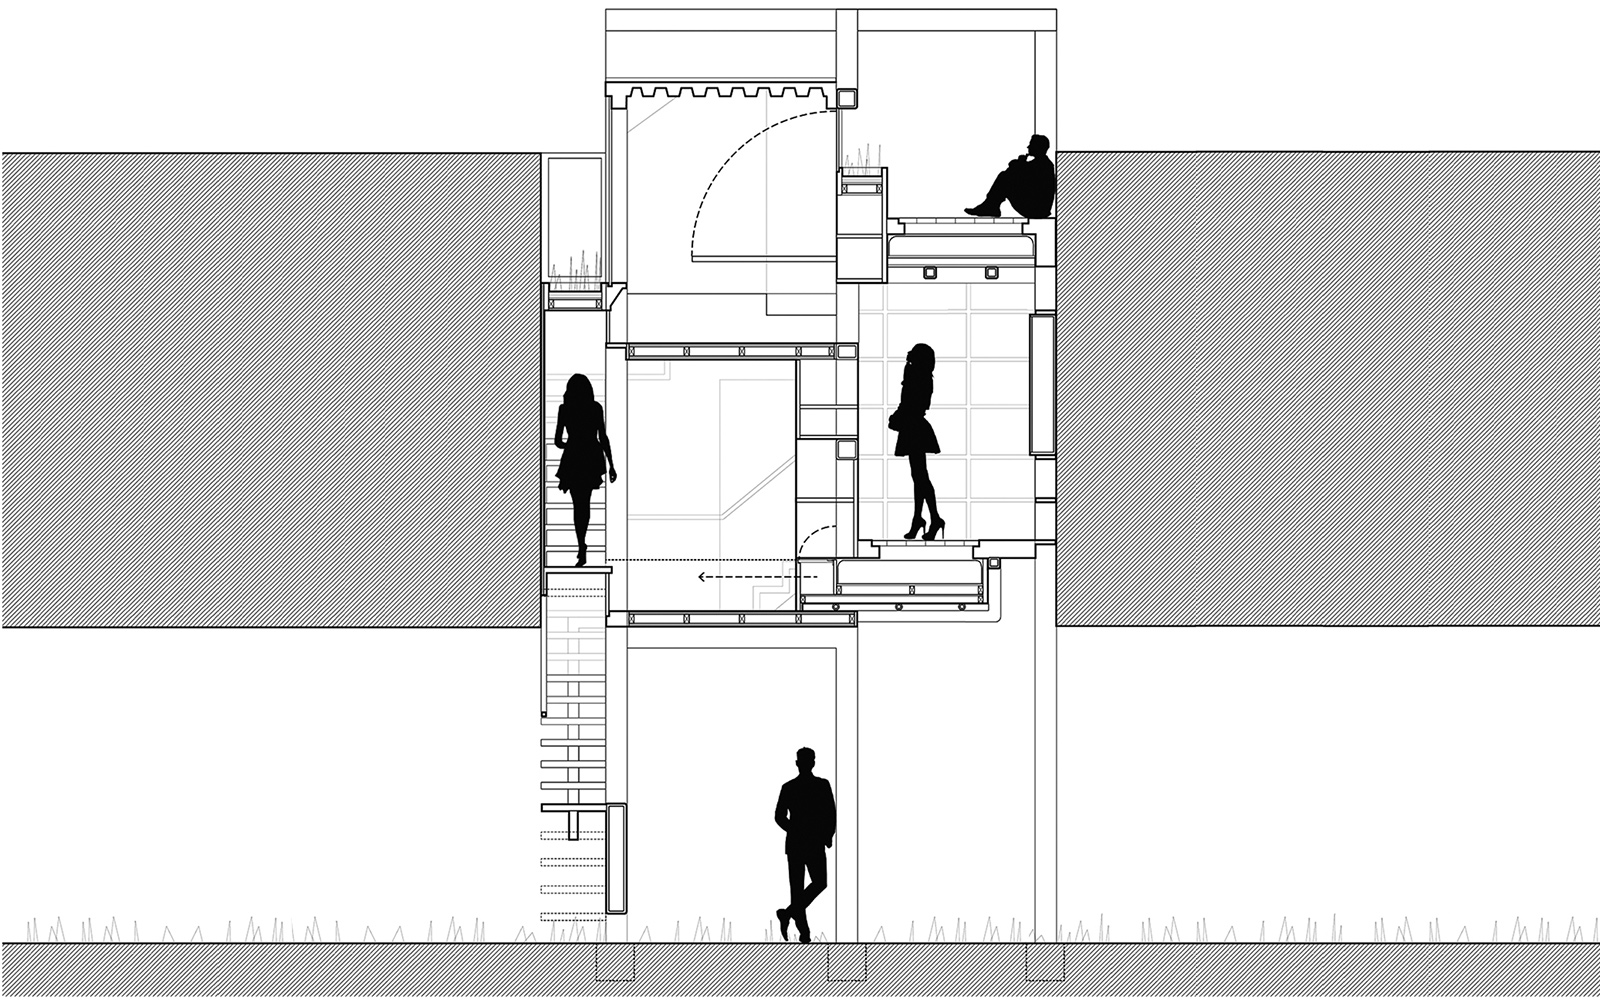 Section showing the compressed nature of the CTST infill housing units within a void as entered from below